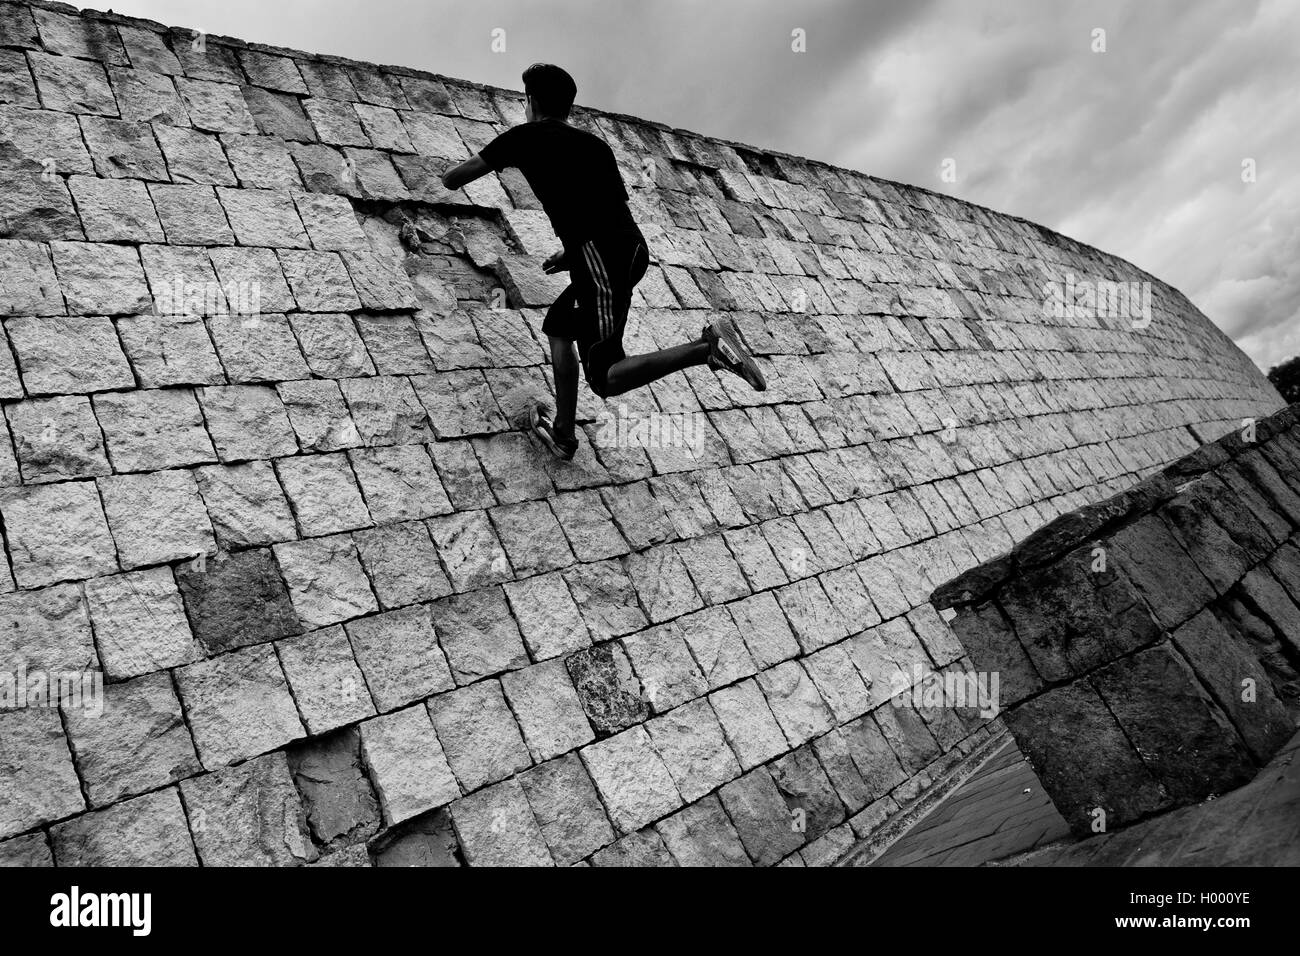 A Colombian parkour runner jumps on the wall during a free running training session of Tamashikaze team in Bogotá, - Stock Image